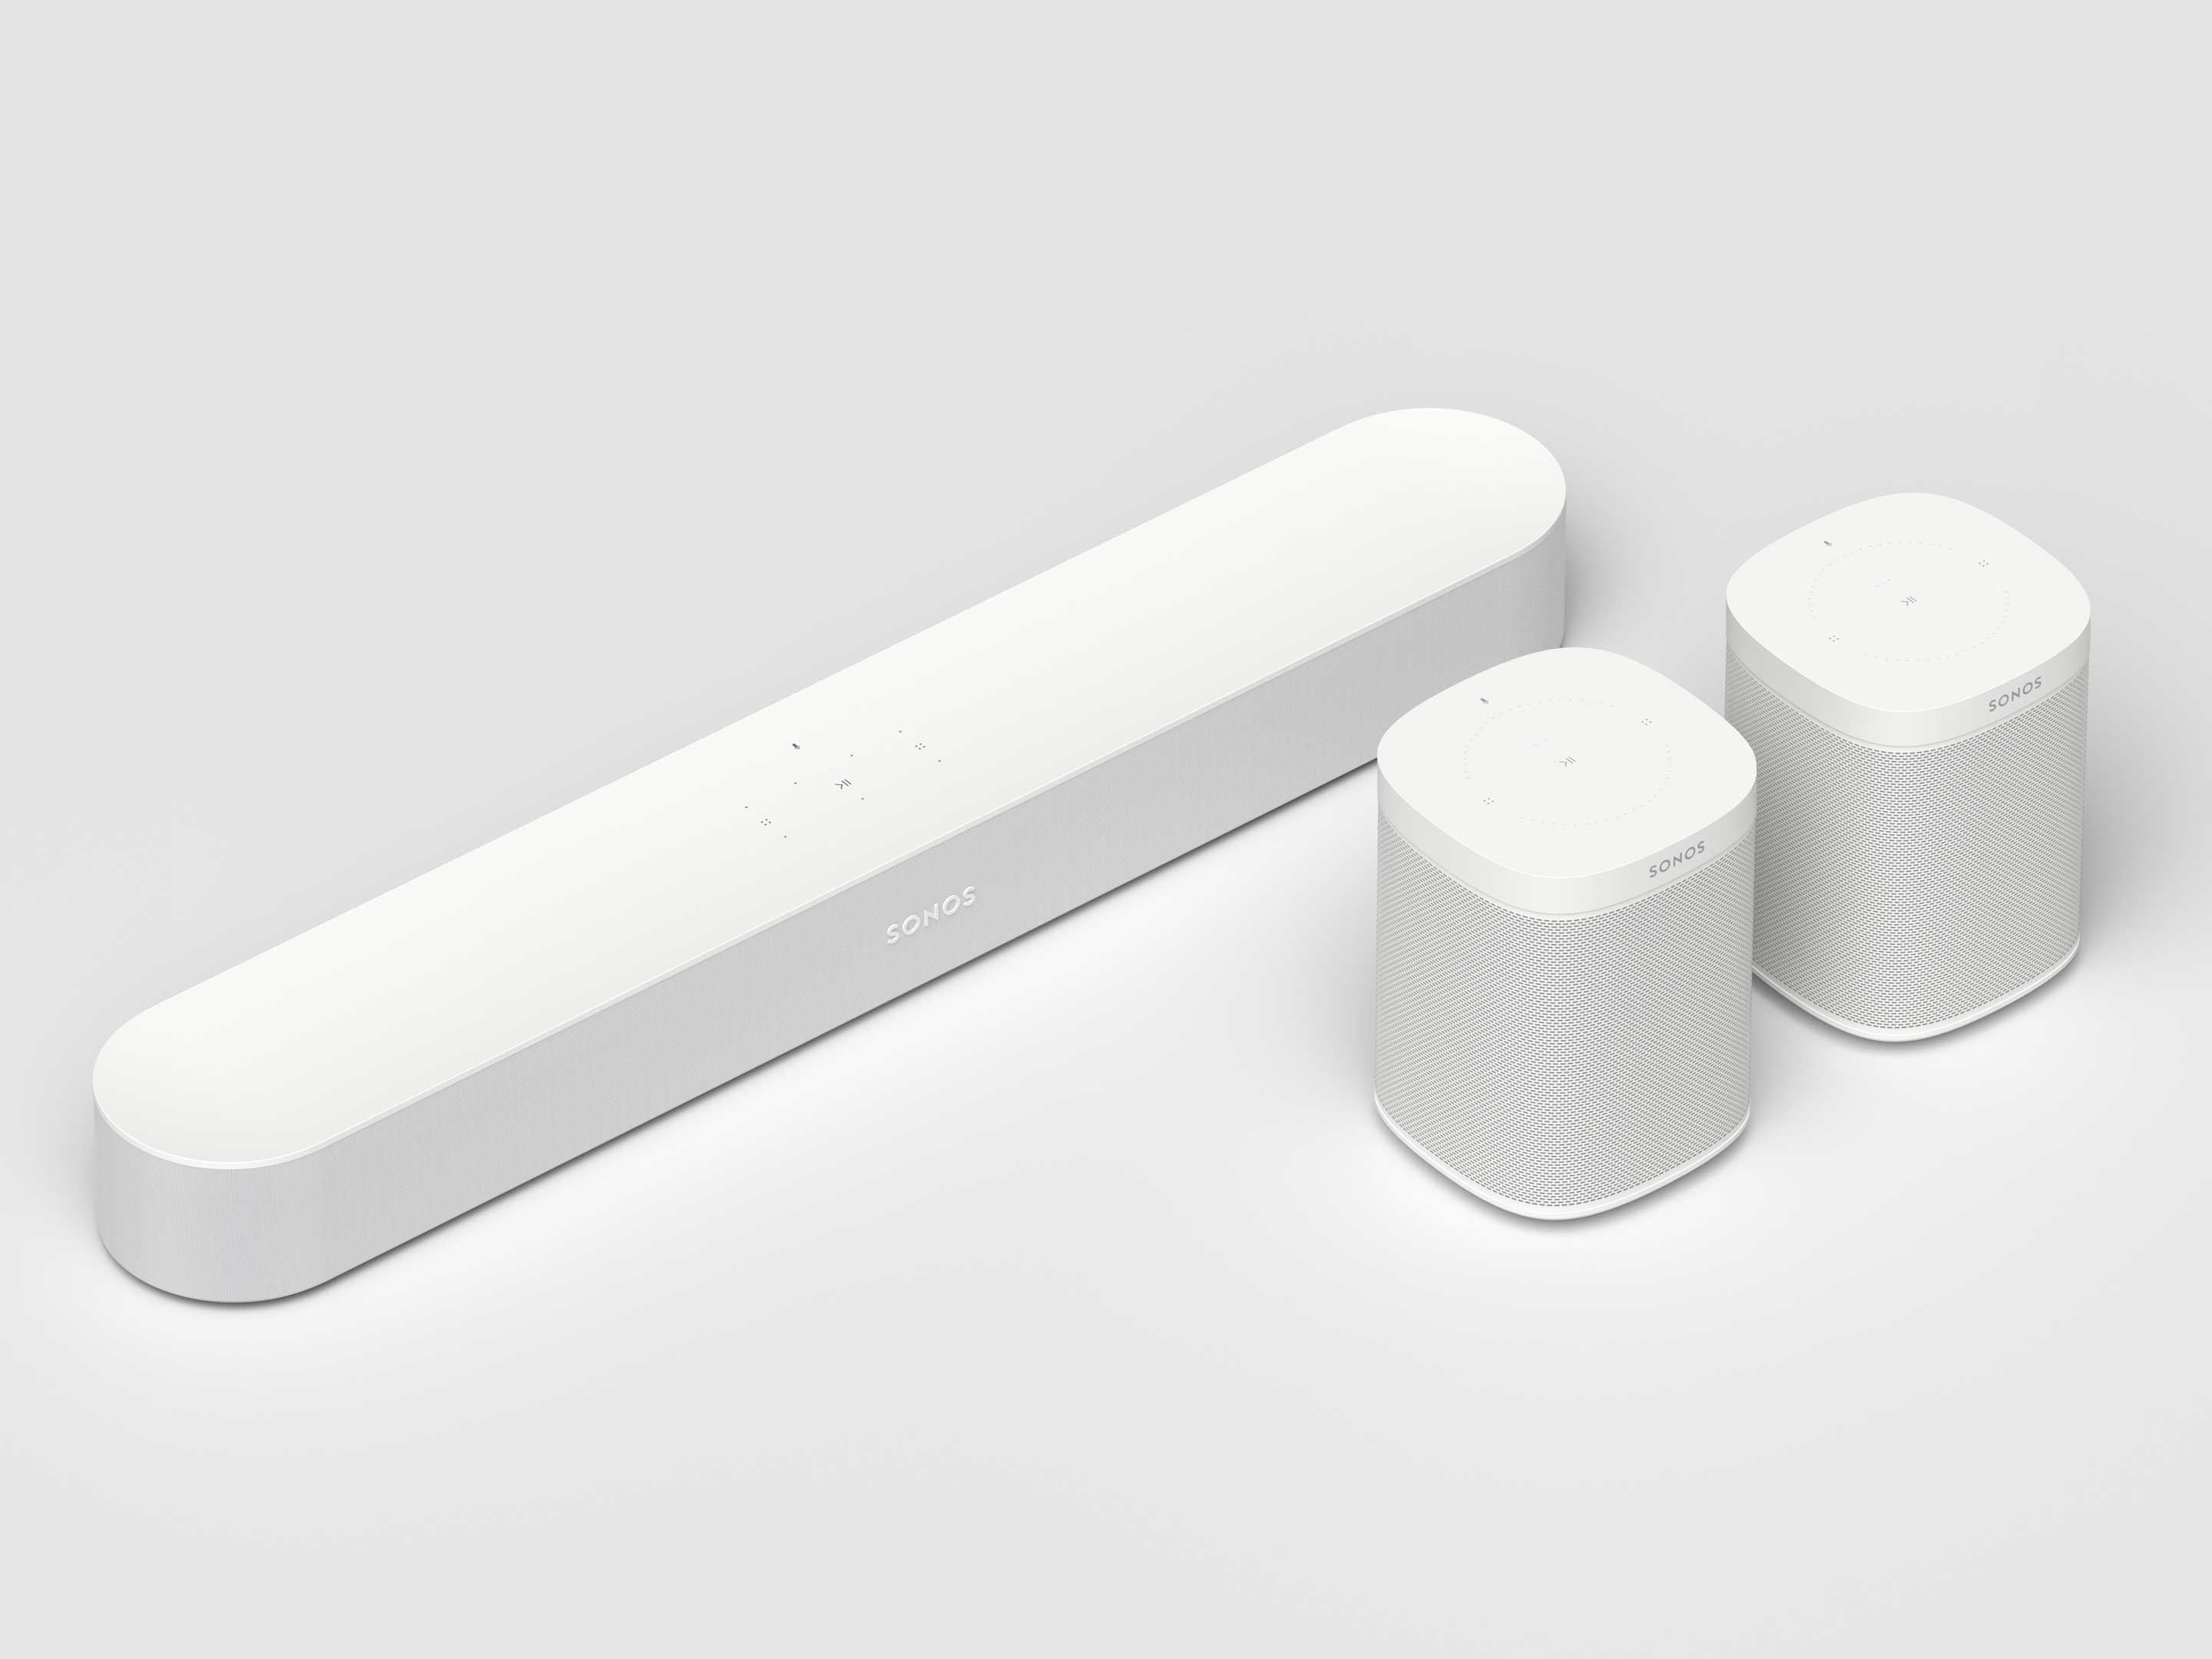 Sonos Beam with two Sonos One speakers